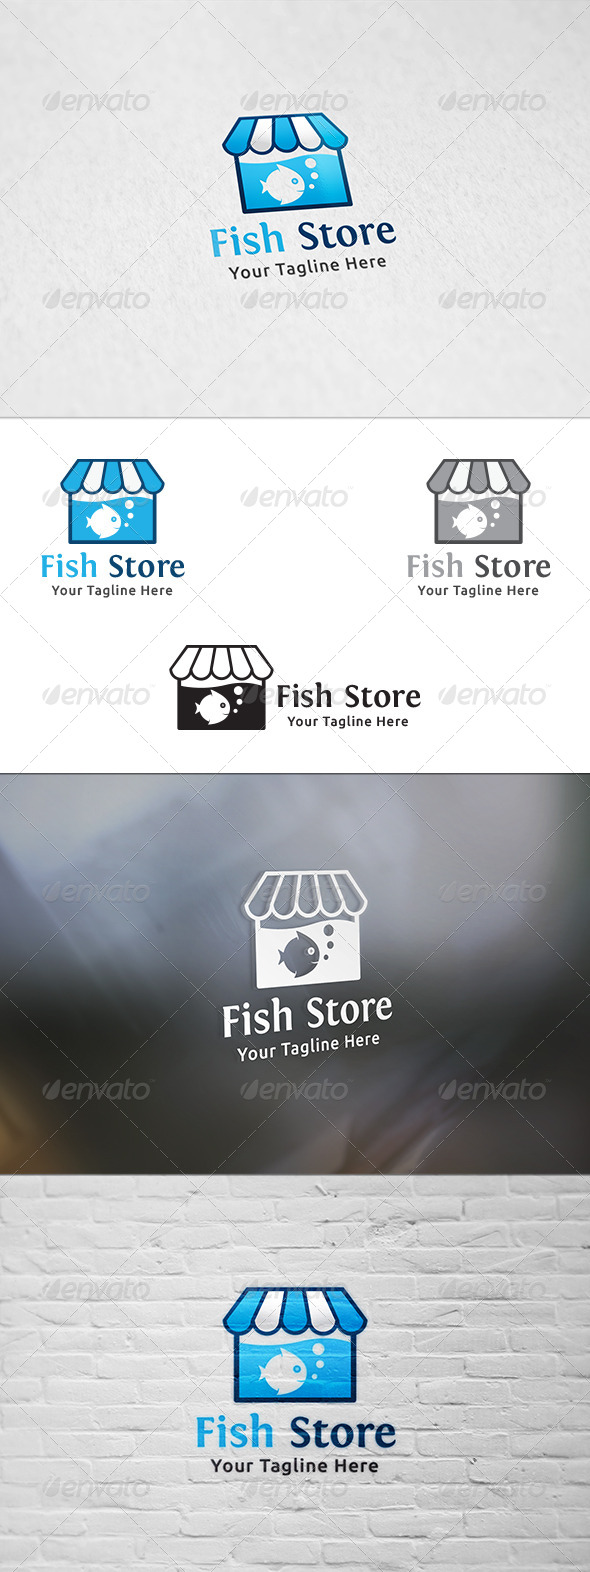 GraphicRiver Fish Store Logo Template 8637358